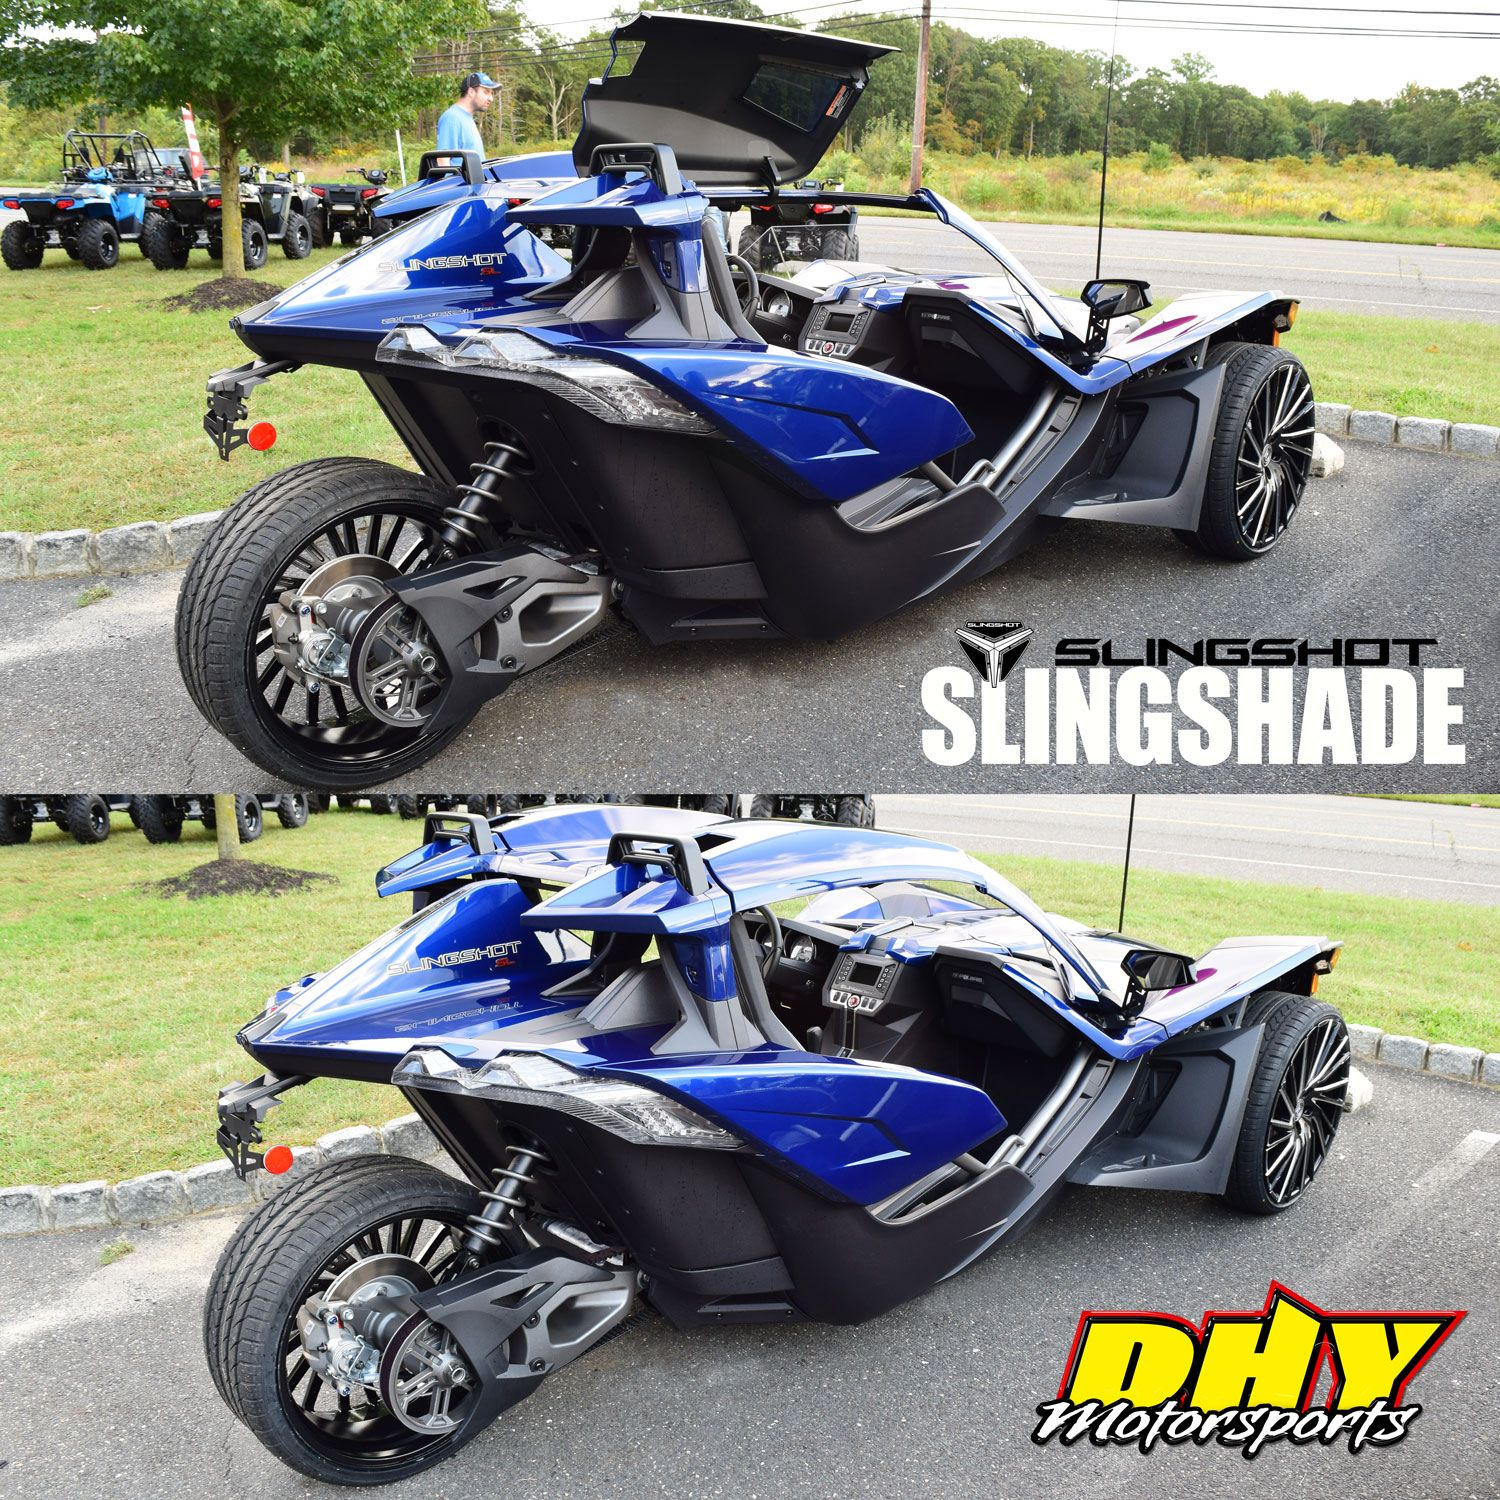 The #Polaris #Slingshot #Slingshade Let's You Keep Cool